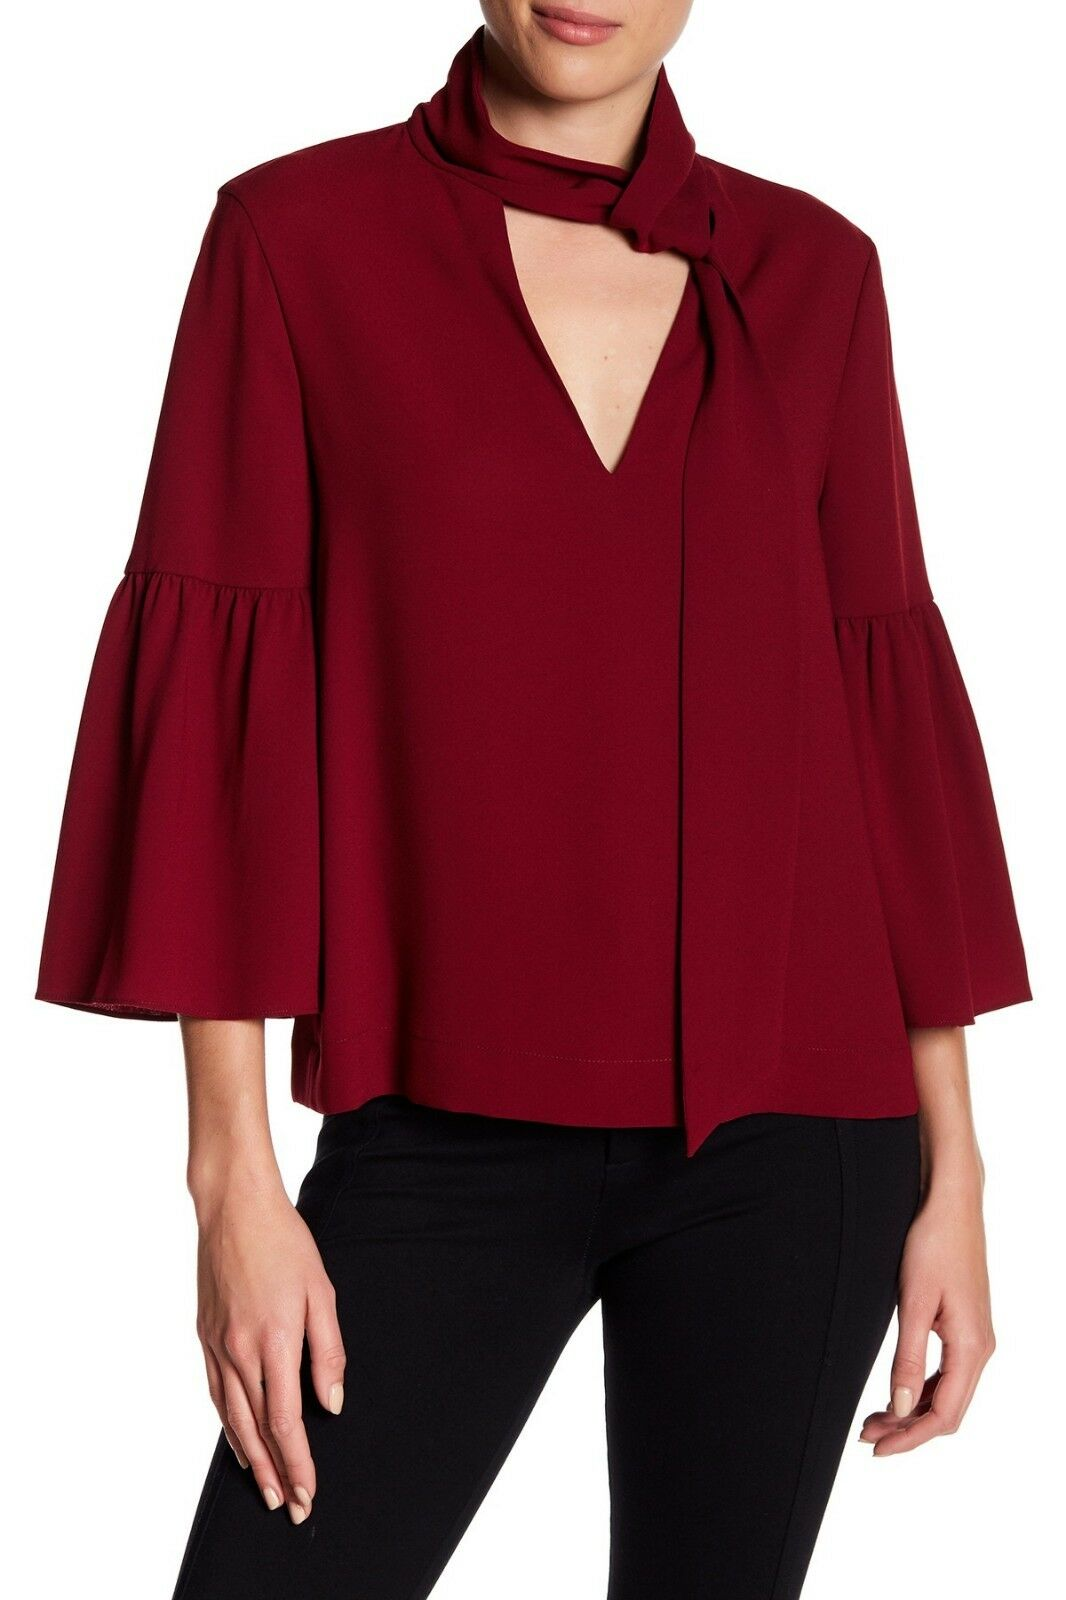 BCBG Mellie Neck-Scarf Top Bell Sleeve Blouse Cranberry Burgundy Wine Small S